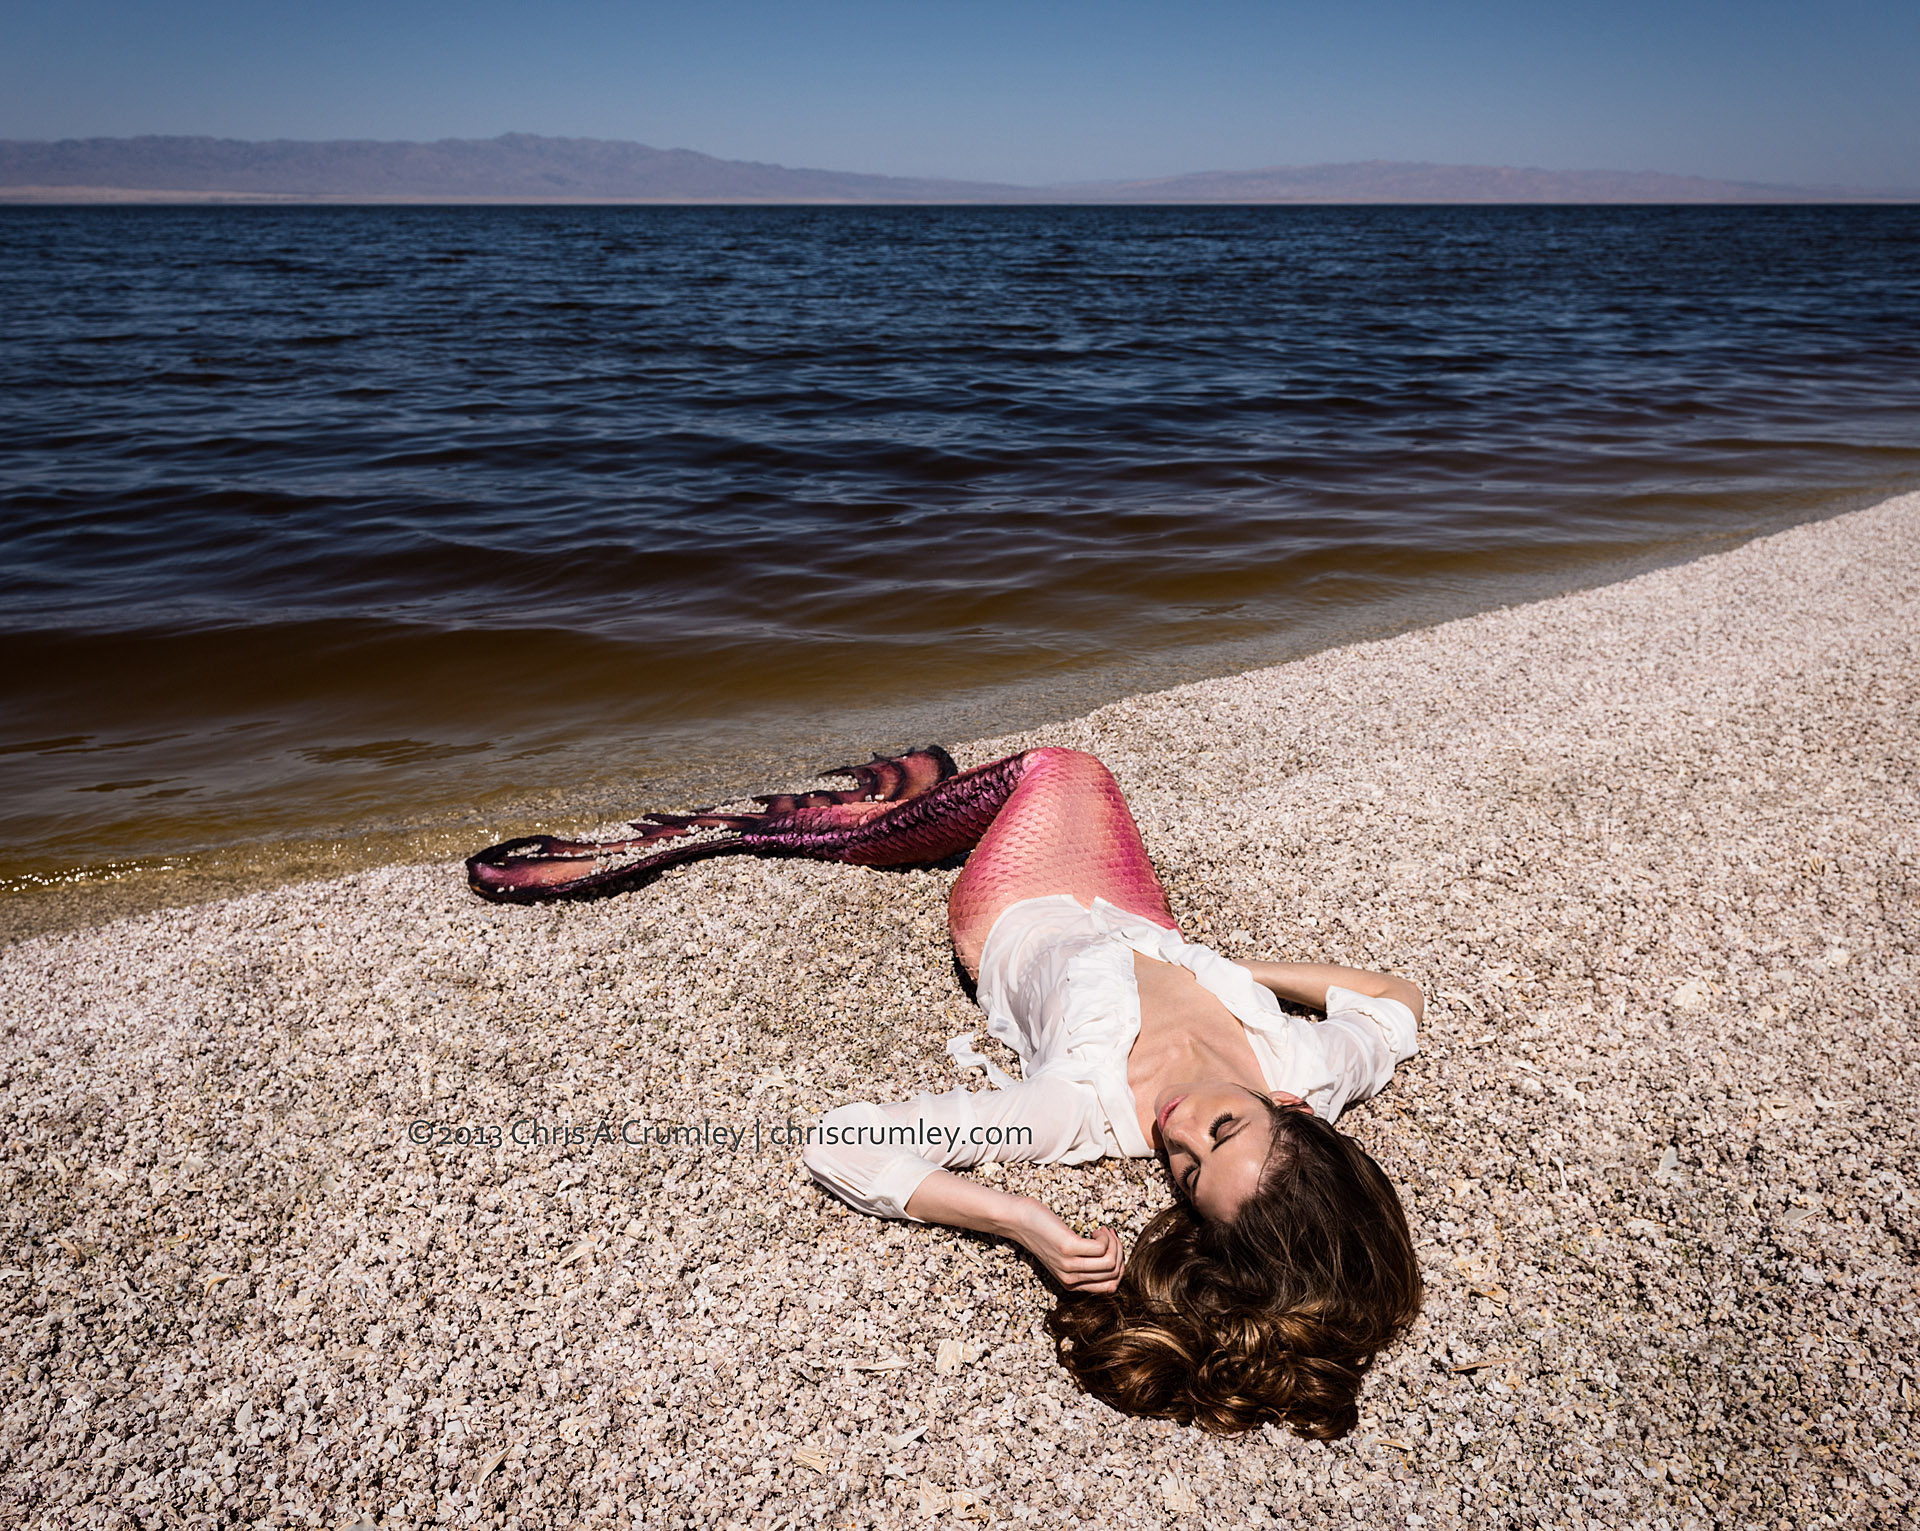 Mermaid on the edge of Salton Sea, CA